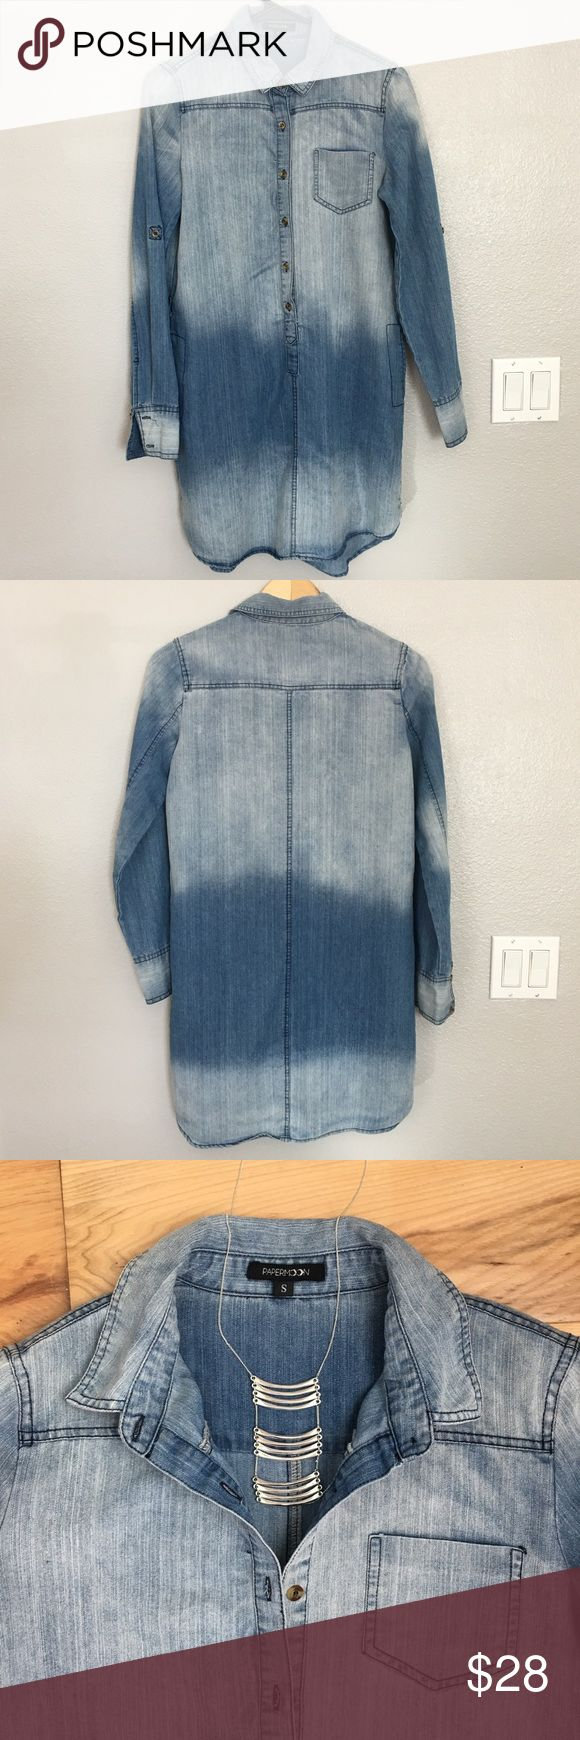 Long Sleeve Denim Shirt Dress Soft fabric.  Comes with braided belt.  Sleeves can be rolled-up with tab or worn down.  Excellent condition, smoke-free, pet-free Paper Moon Dresses Long Sleeve